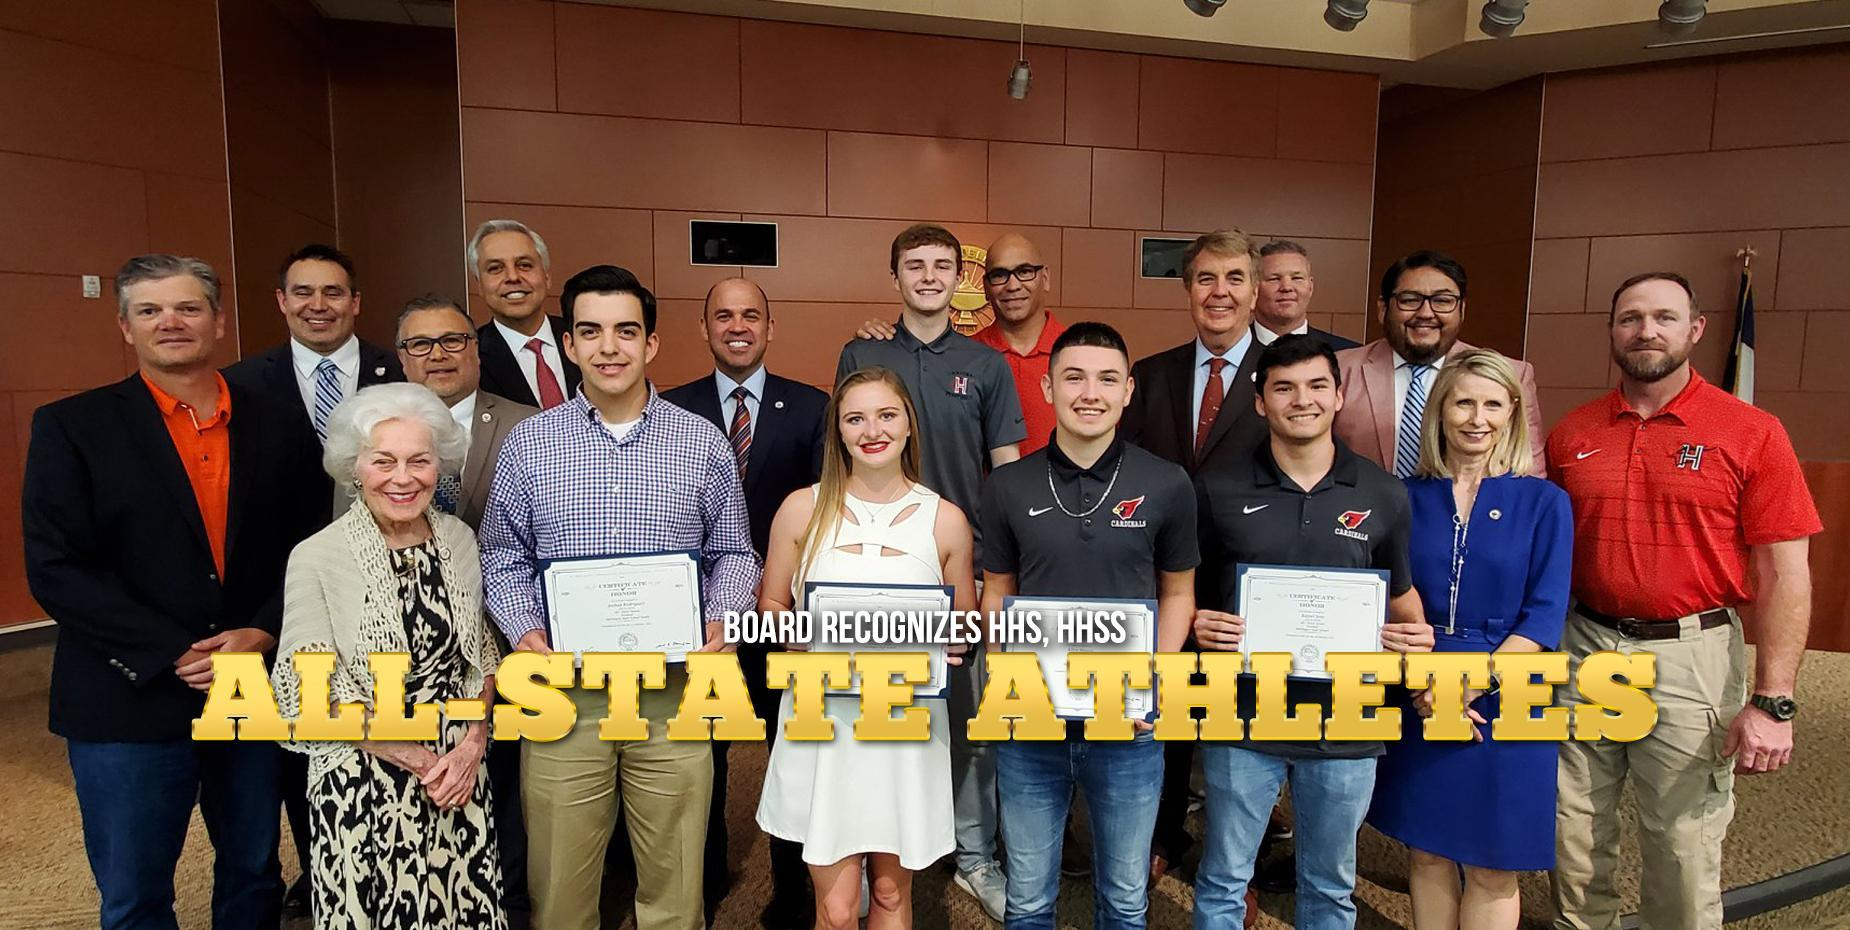 Board recognizes HHS, HHSS All-State athletes